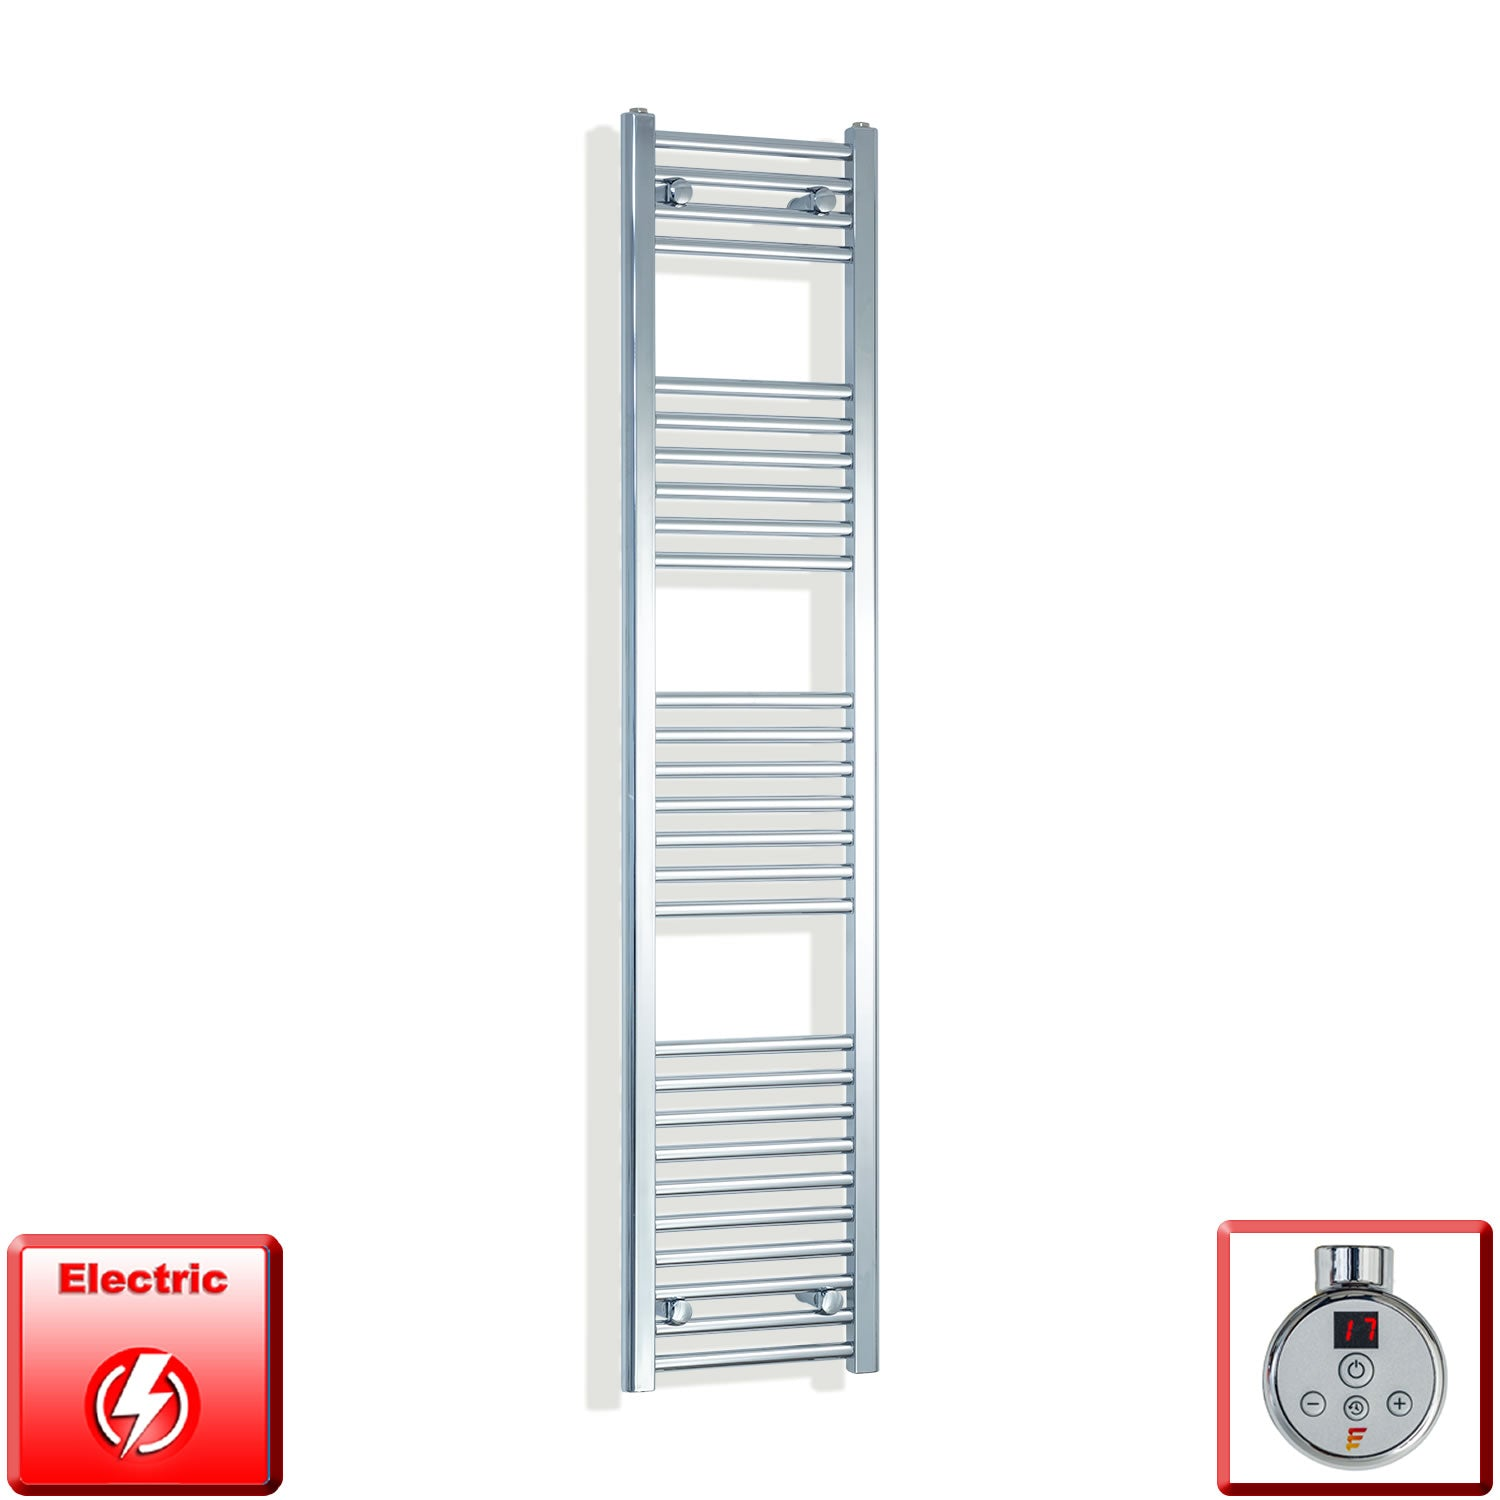 300mm Wide 1600mm High Pre-Filled Chrome Electric Towel Rail Radiator With Thermostatic DIGI Element